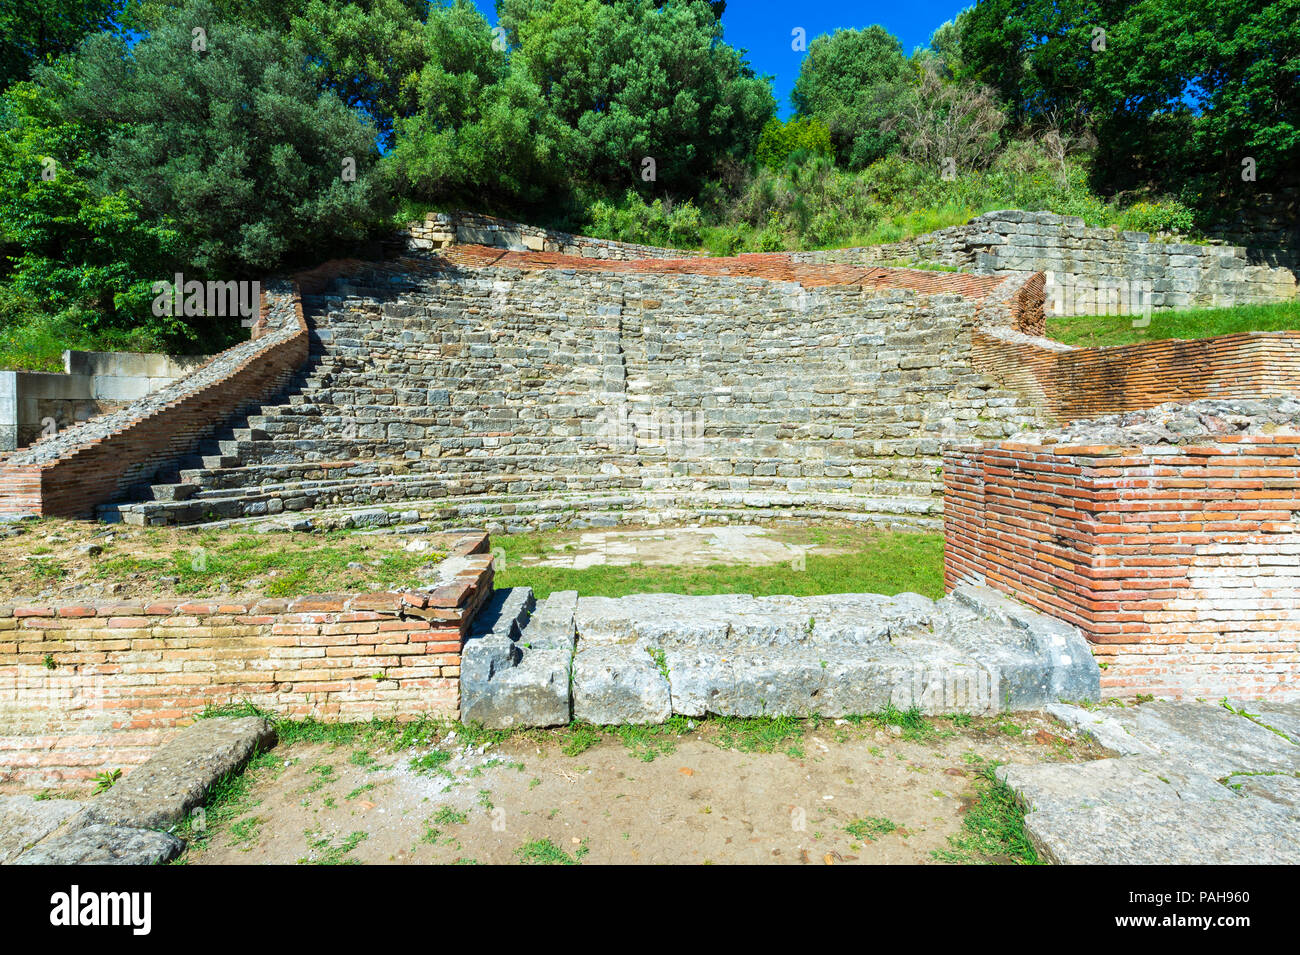 Odeon theater, Apollonia Archaeological Park, Pojani Village, Illyria, Albania - Stock Image